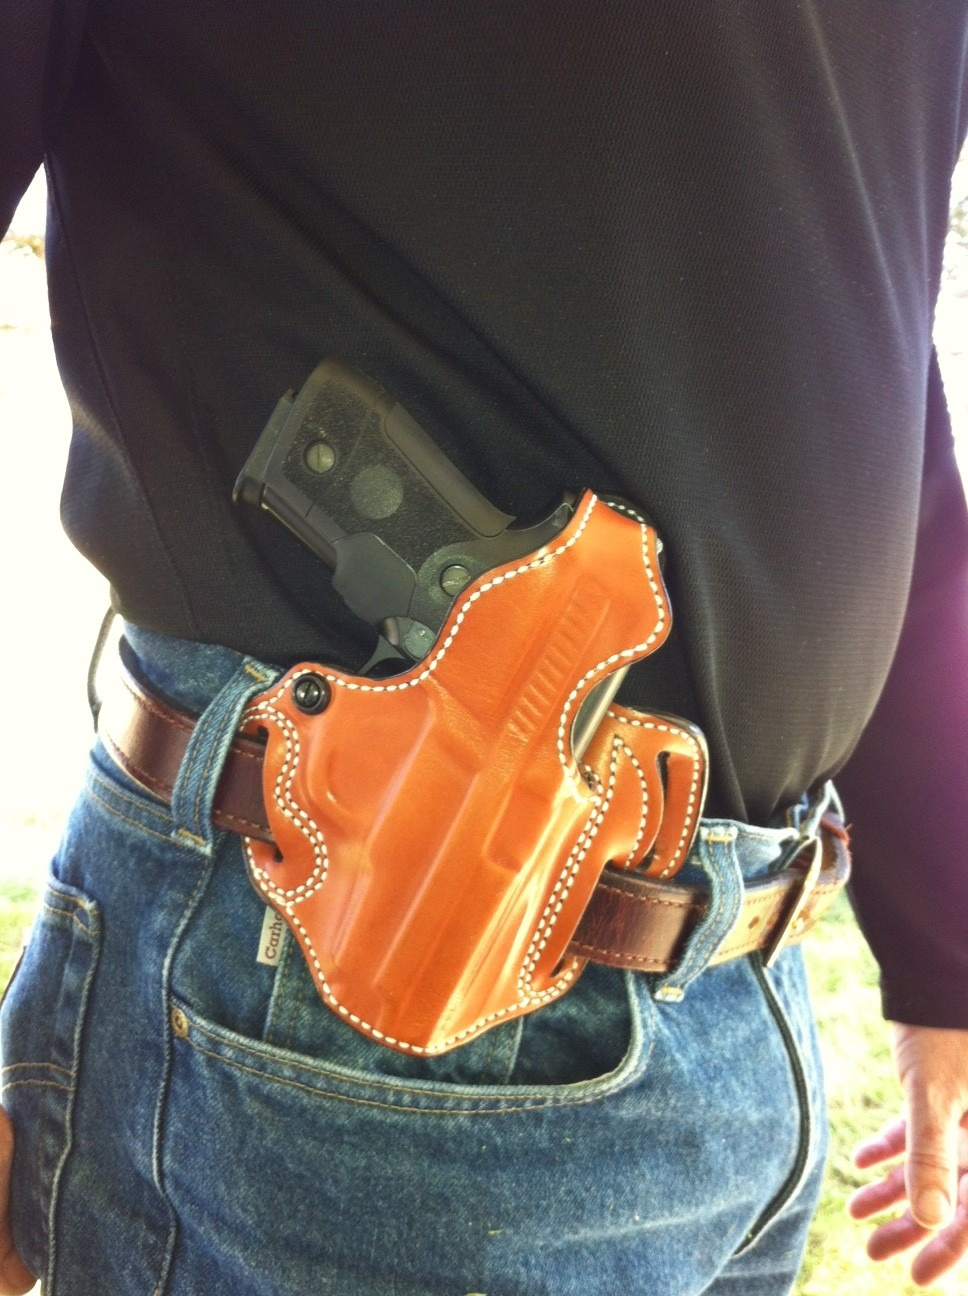 DeSantis Thumb Break Scabbard Holster Review